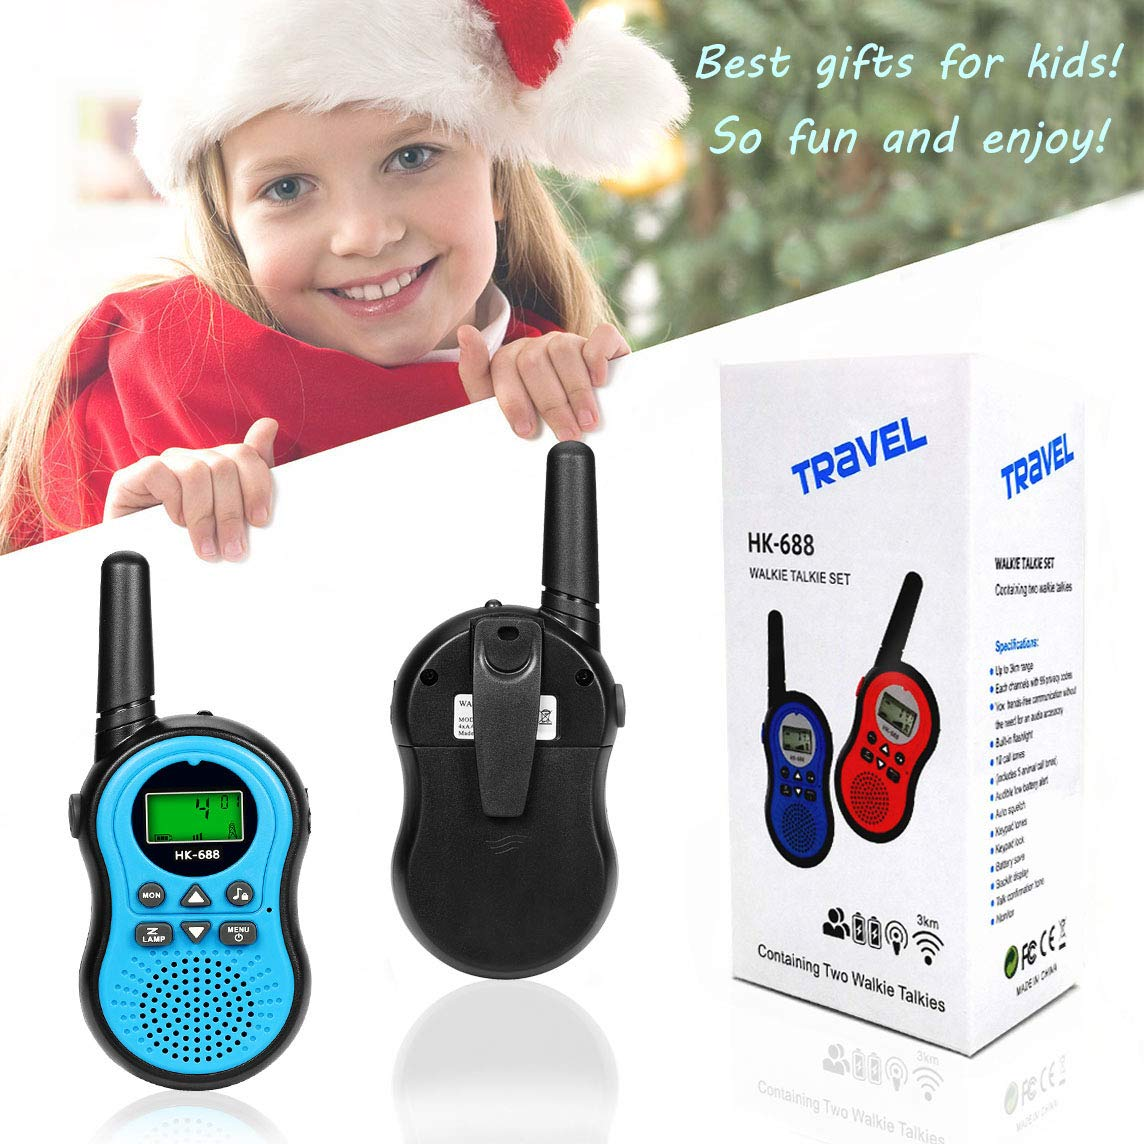 Kids Toys for 3-15 Year Old Boy,Fun Gifts for Teen Girls Boys,XIYITOY Walkie Talkies for Children Teen Boy Gifts Birthday Presents,Boys Gift Age 5,HK-688 1Pair(Blue) by XIYITOY (Image #6)